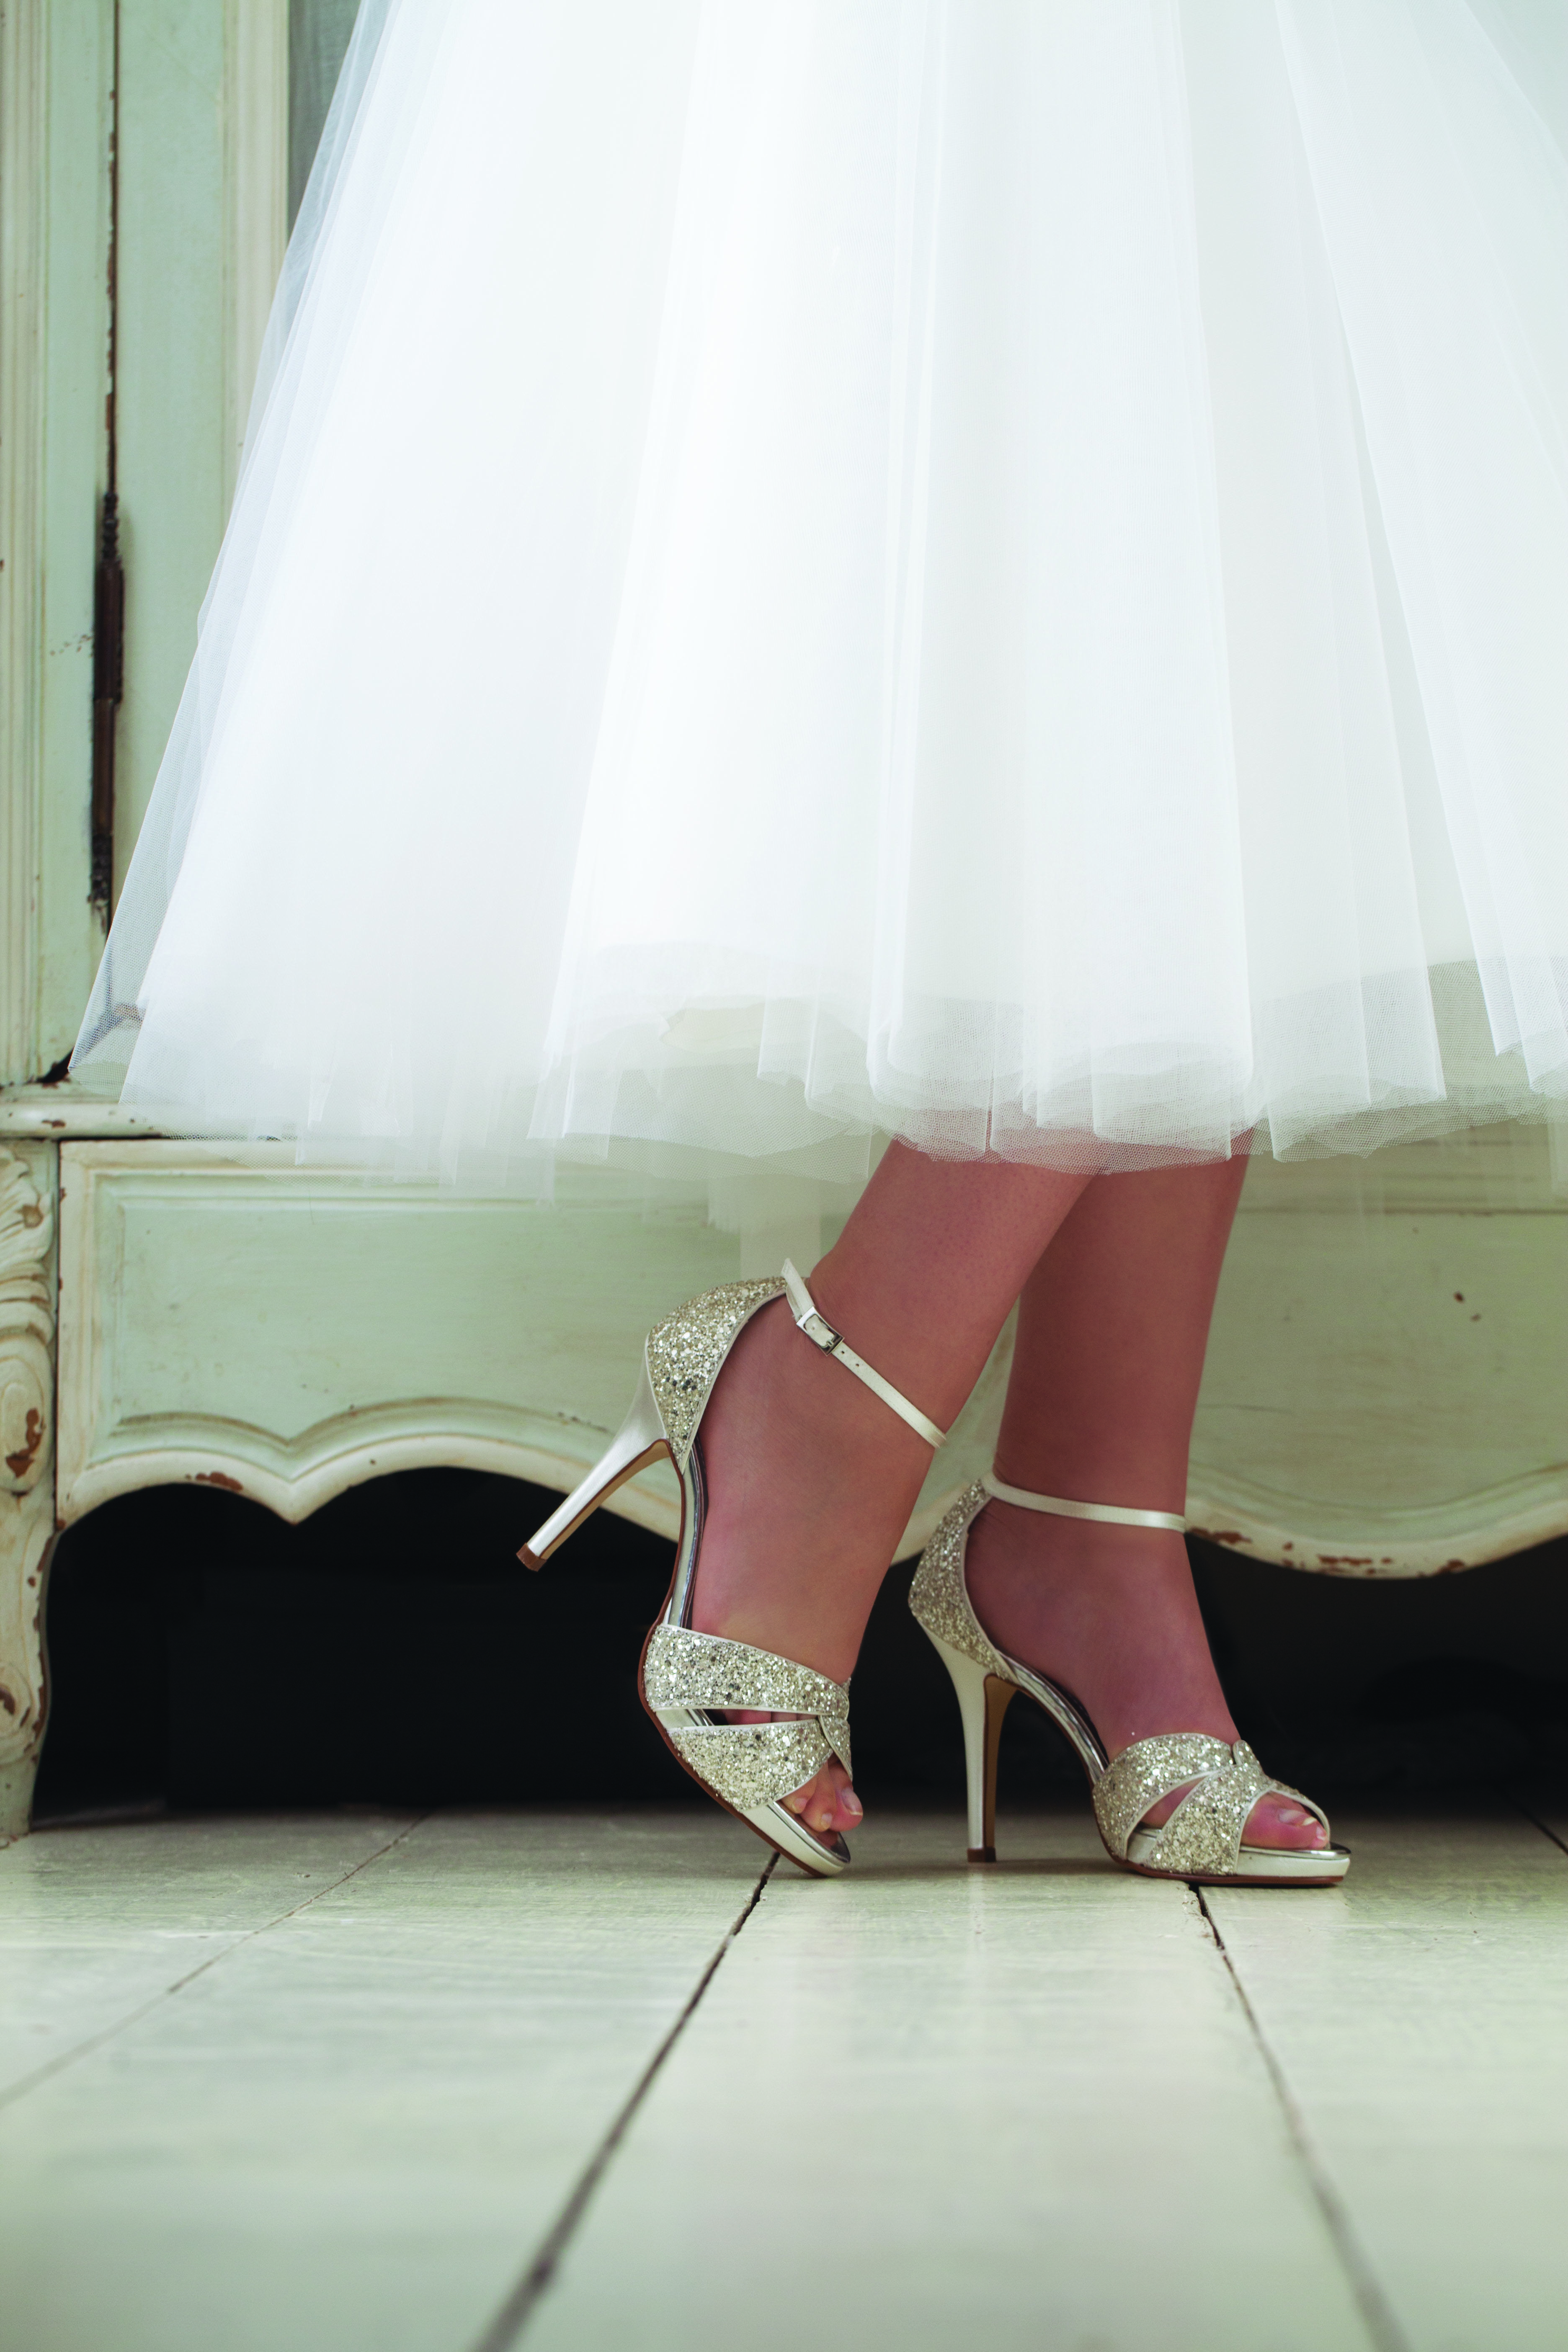 d527f0742c0 Rainbow Club wedding shoes available at Tilly Mint Weddings ...